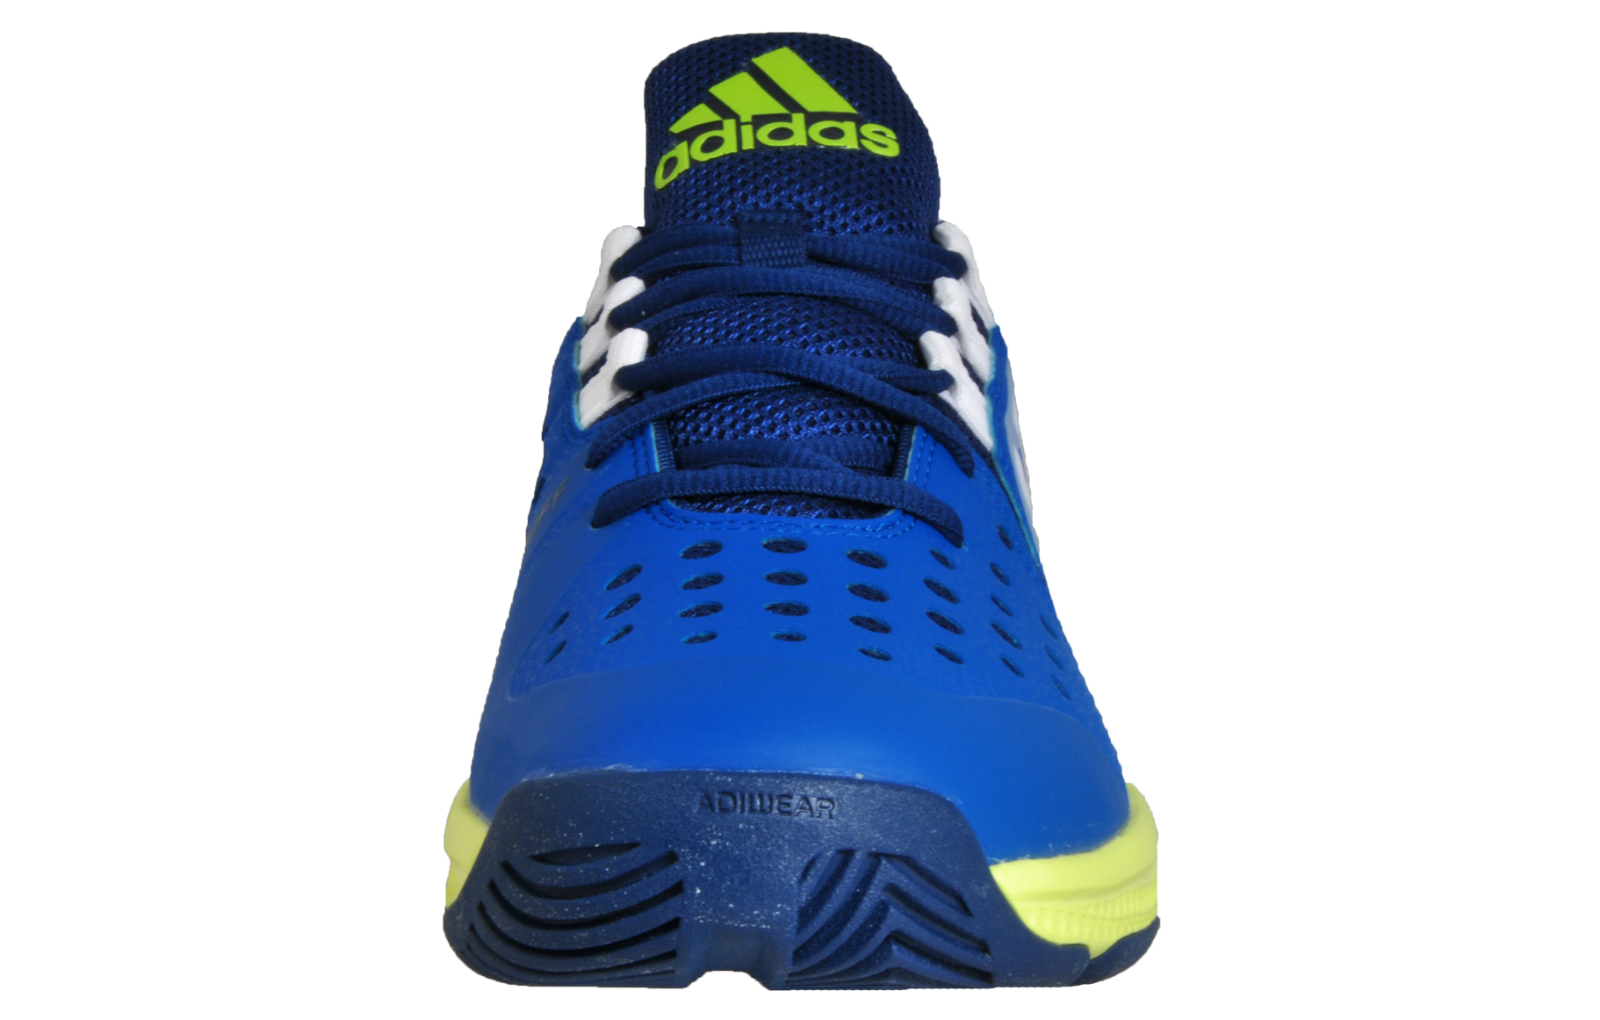 55fe7a8898e Adidas Barricade Classic Bounce Men s Tennis Court Fitness Trainers Blue